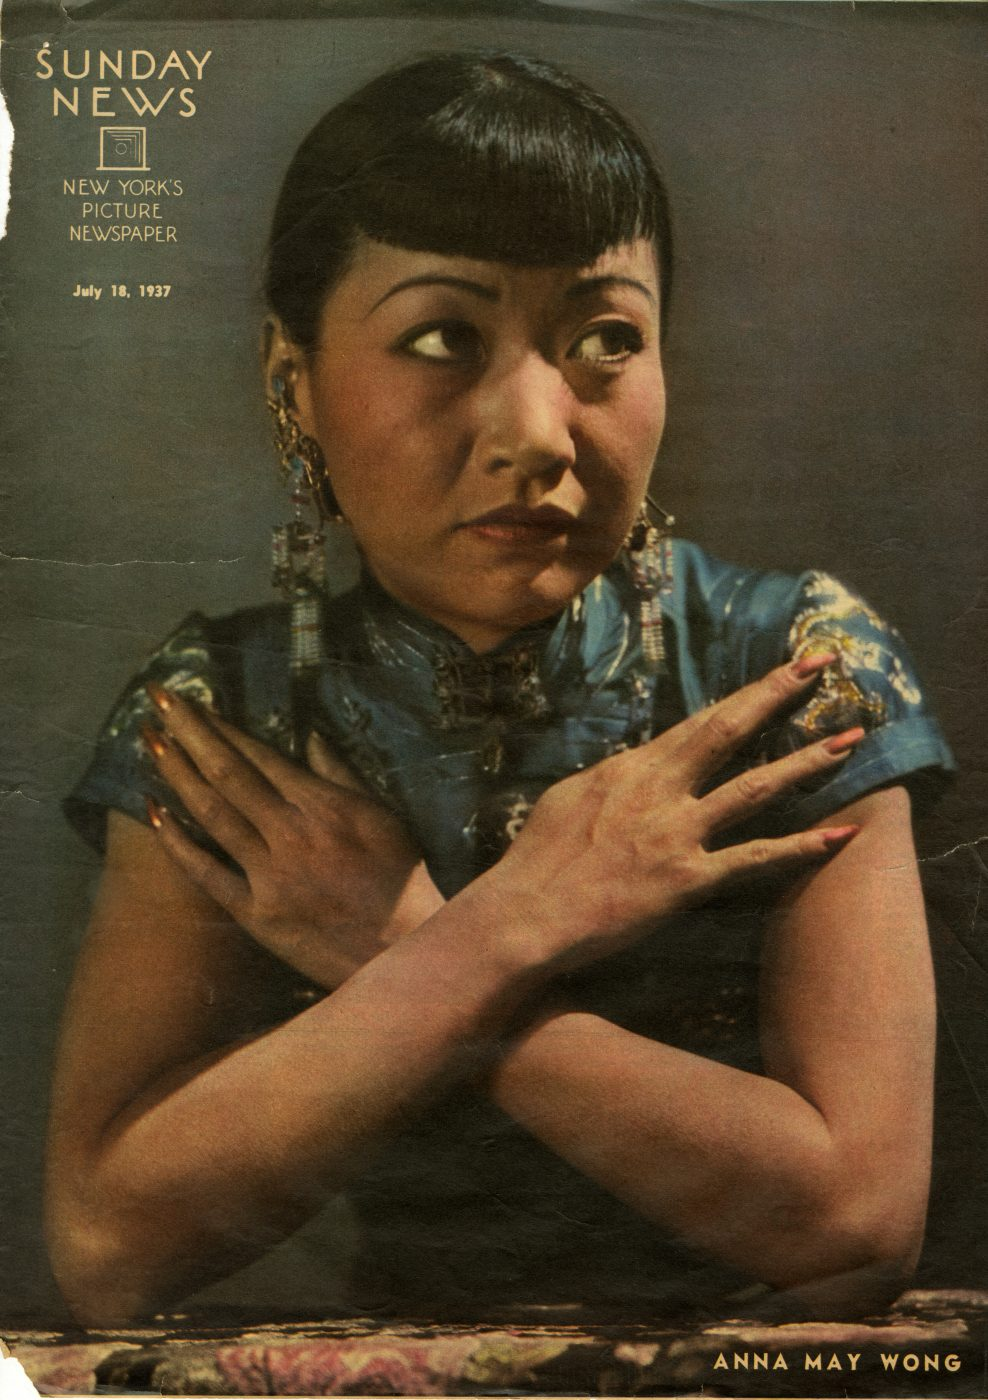 13 May 2019 Posted. Anna May Wong on Sunday News Cover, Courtesy of Alex Jay, Museum of Chinese in America (MOCA) Collection. 黄柳霜在《星期日新闻》杂志封面,Alex Jay捐赠,美国华人博物馆(MOCA)馆藏